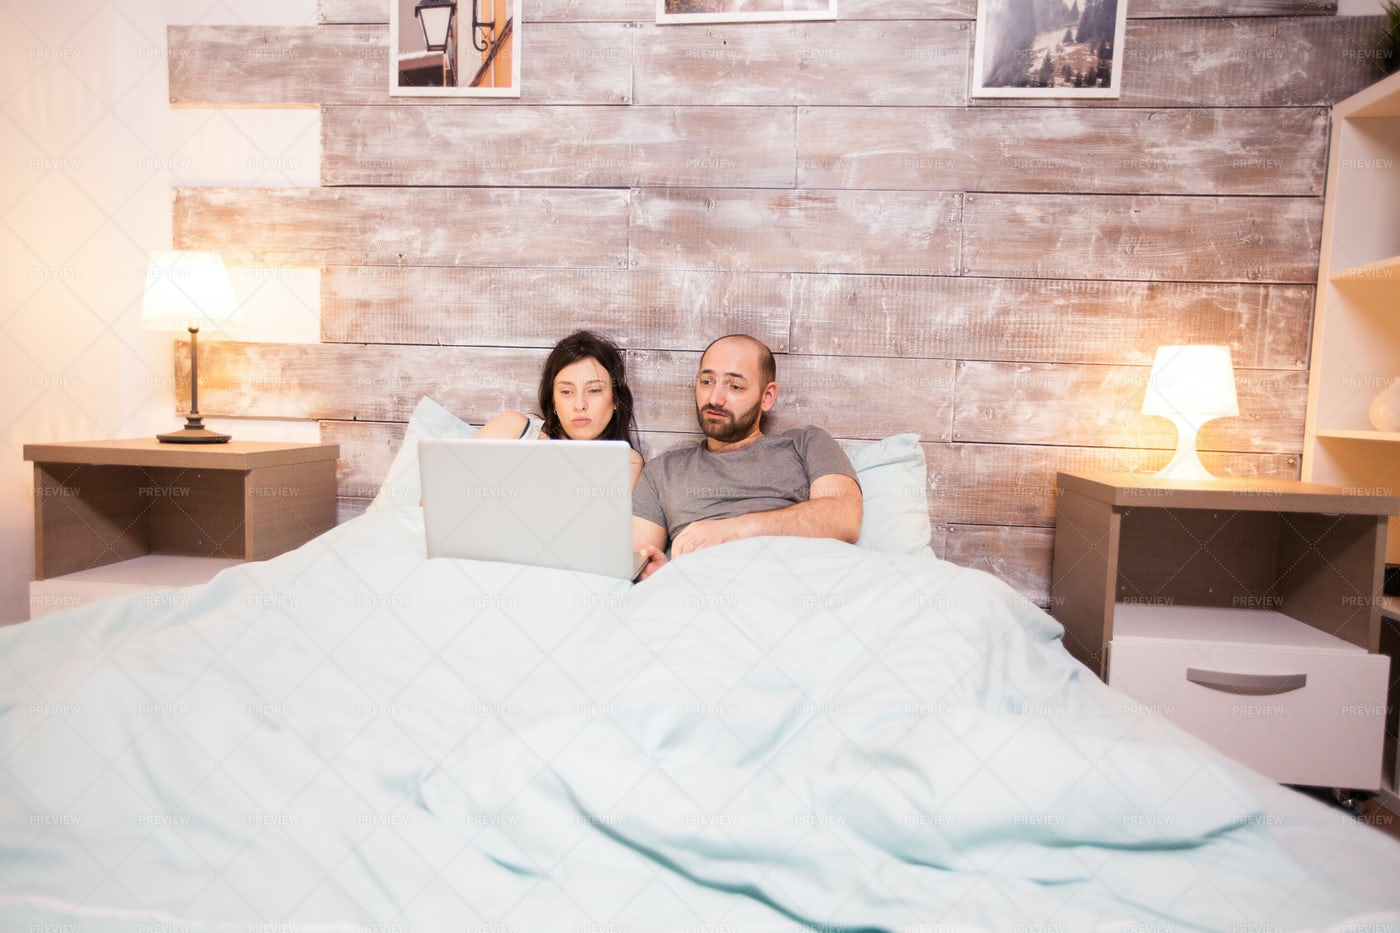 On A Laptop In Bed: Stock Photos